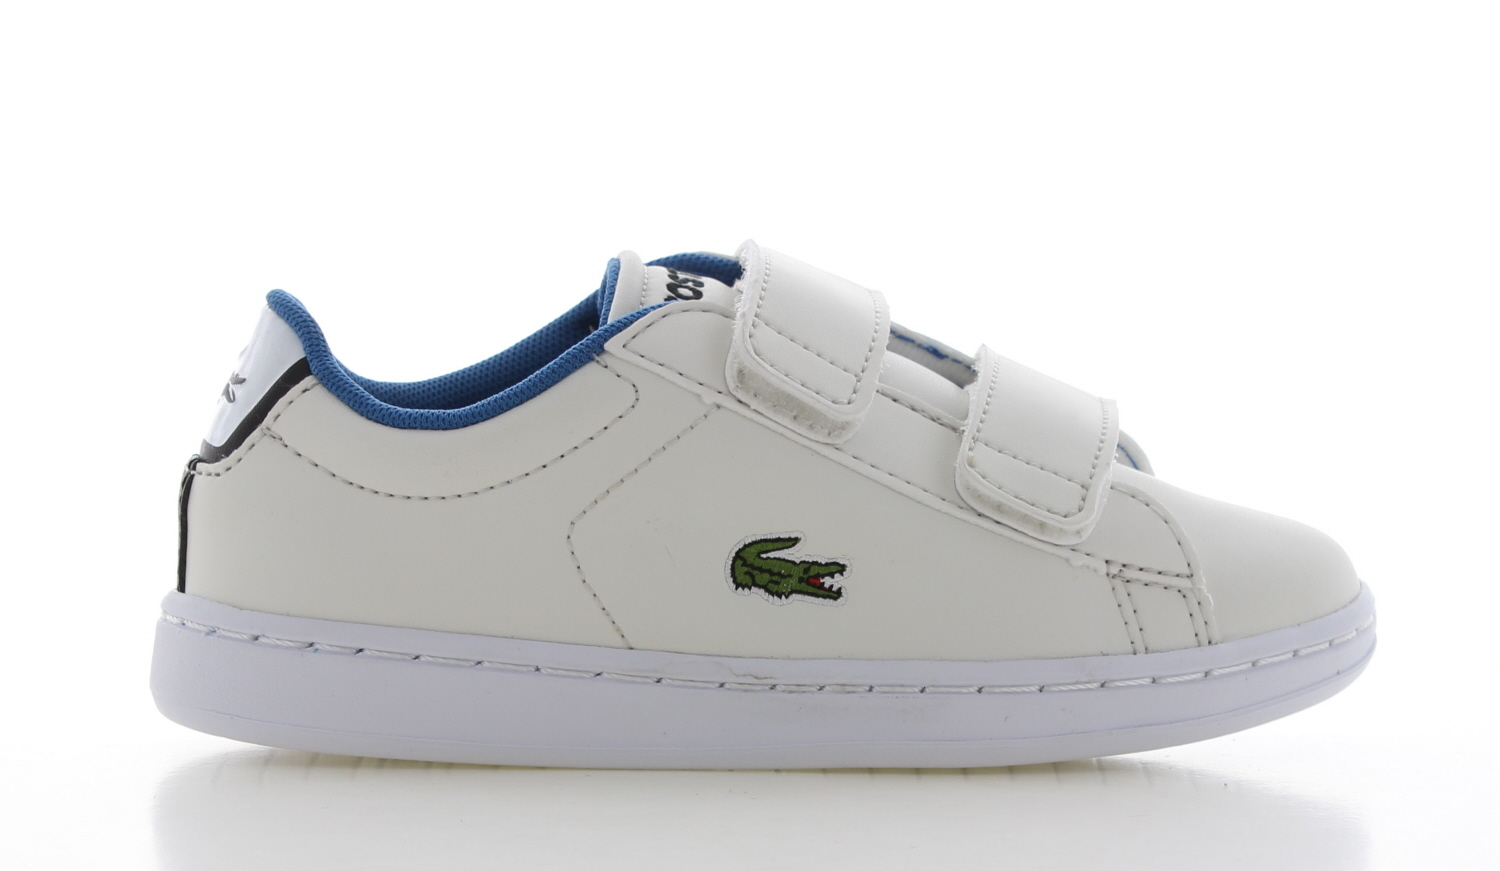 Lacoste Carnaby Evo Strap Wit Kinderen